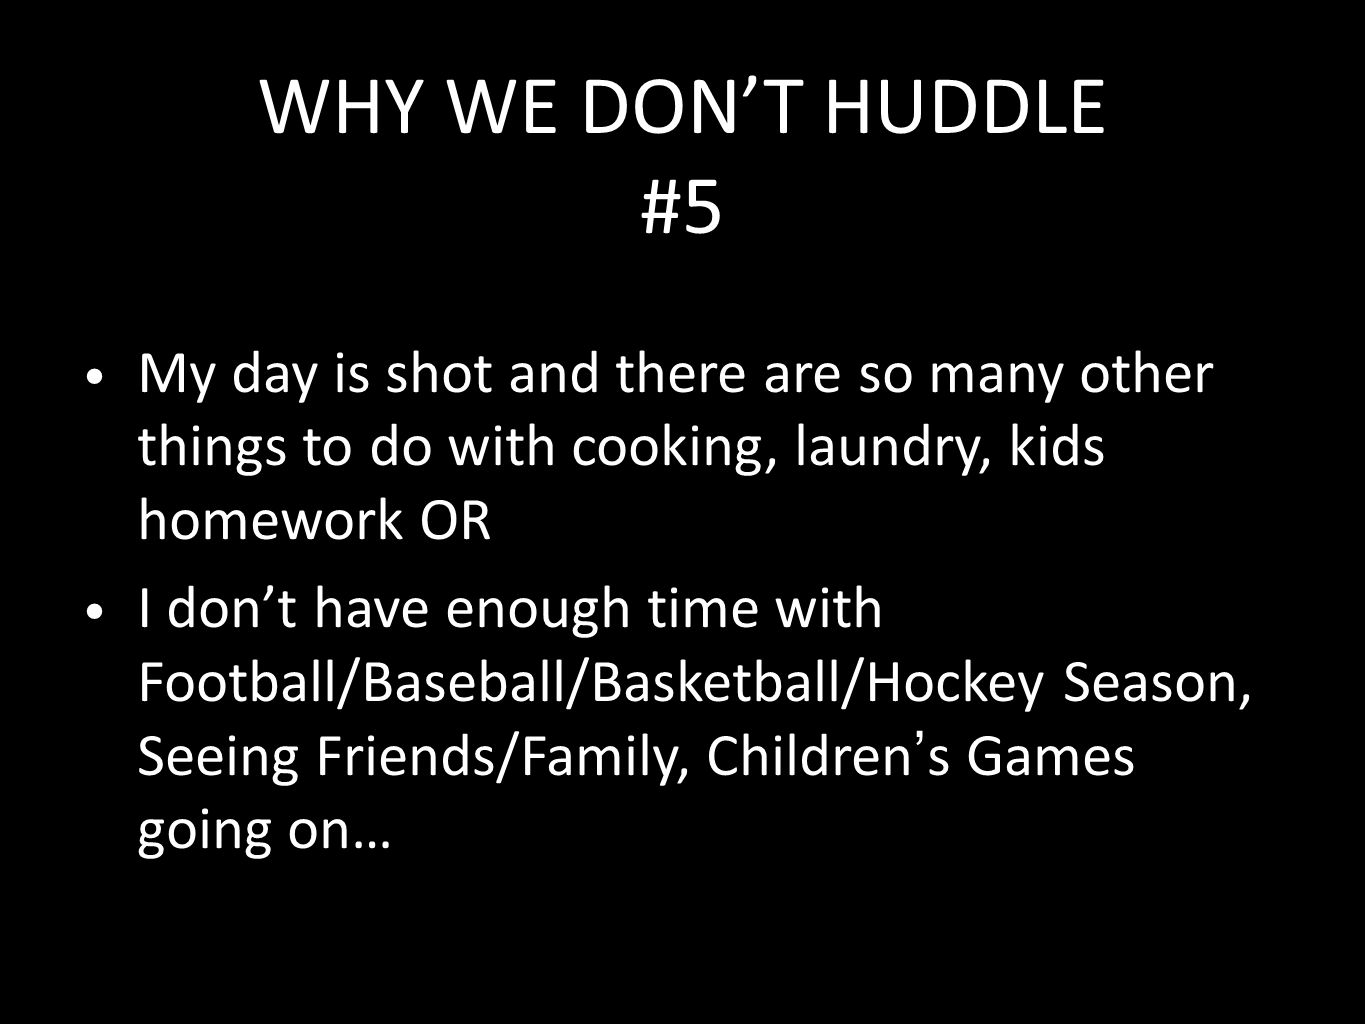 WHY WE DON'T HUDDLE #5 My day is shot and there are so many other things to do with cooking, laundry, kids homework OR I don't have enough time with Football/Baseball/Basketball/Hockey Season, Seeing Friends/Family, Children's Games going on…